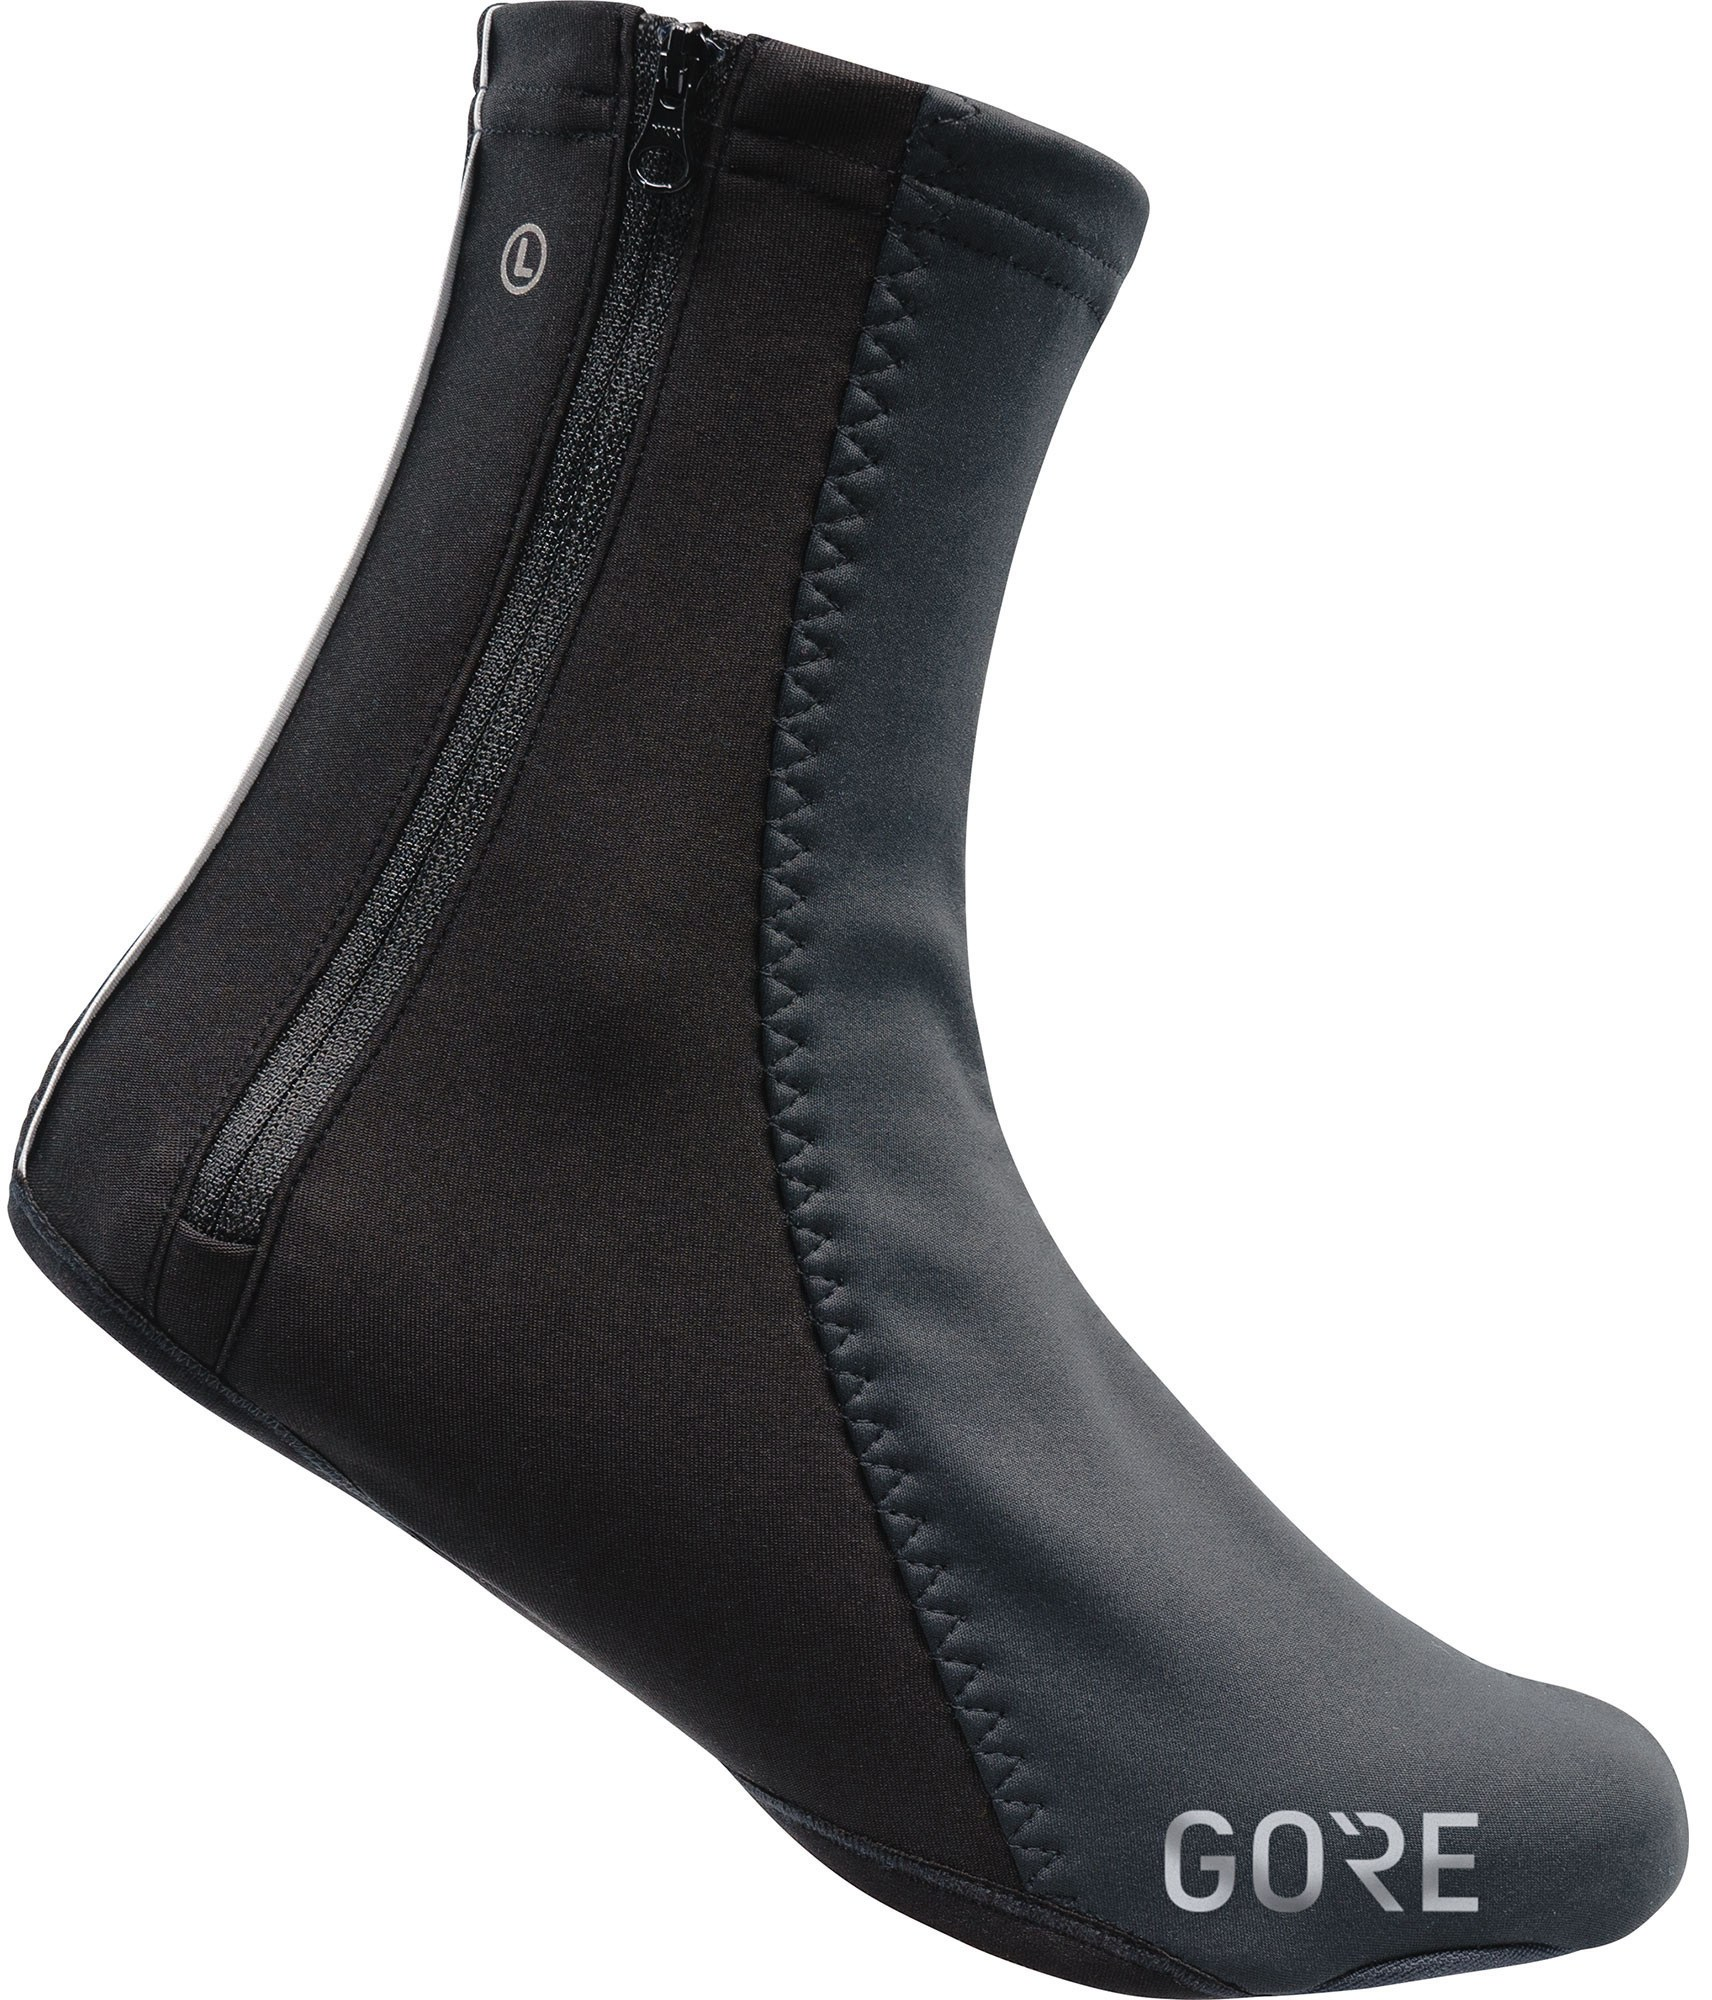 GORE BIKE WEAR C5 GORE WINDSTOPPER Thermo Overshoes